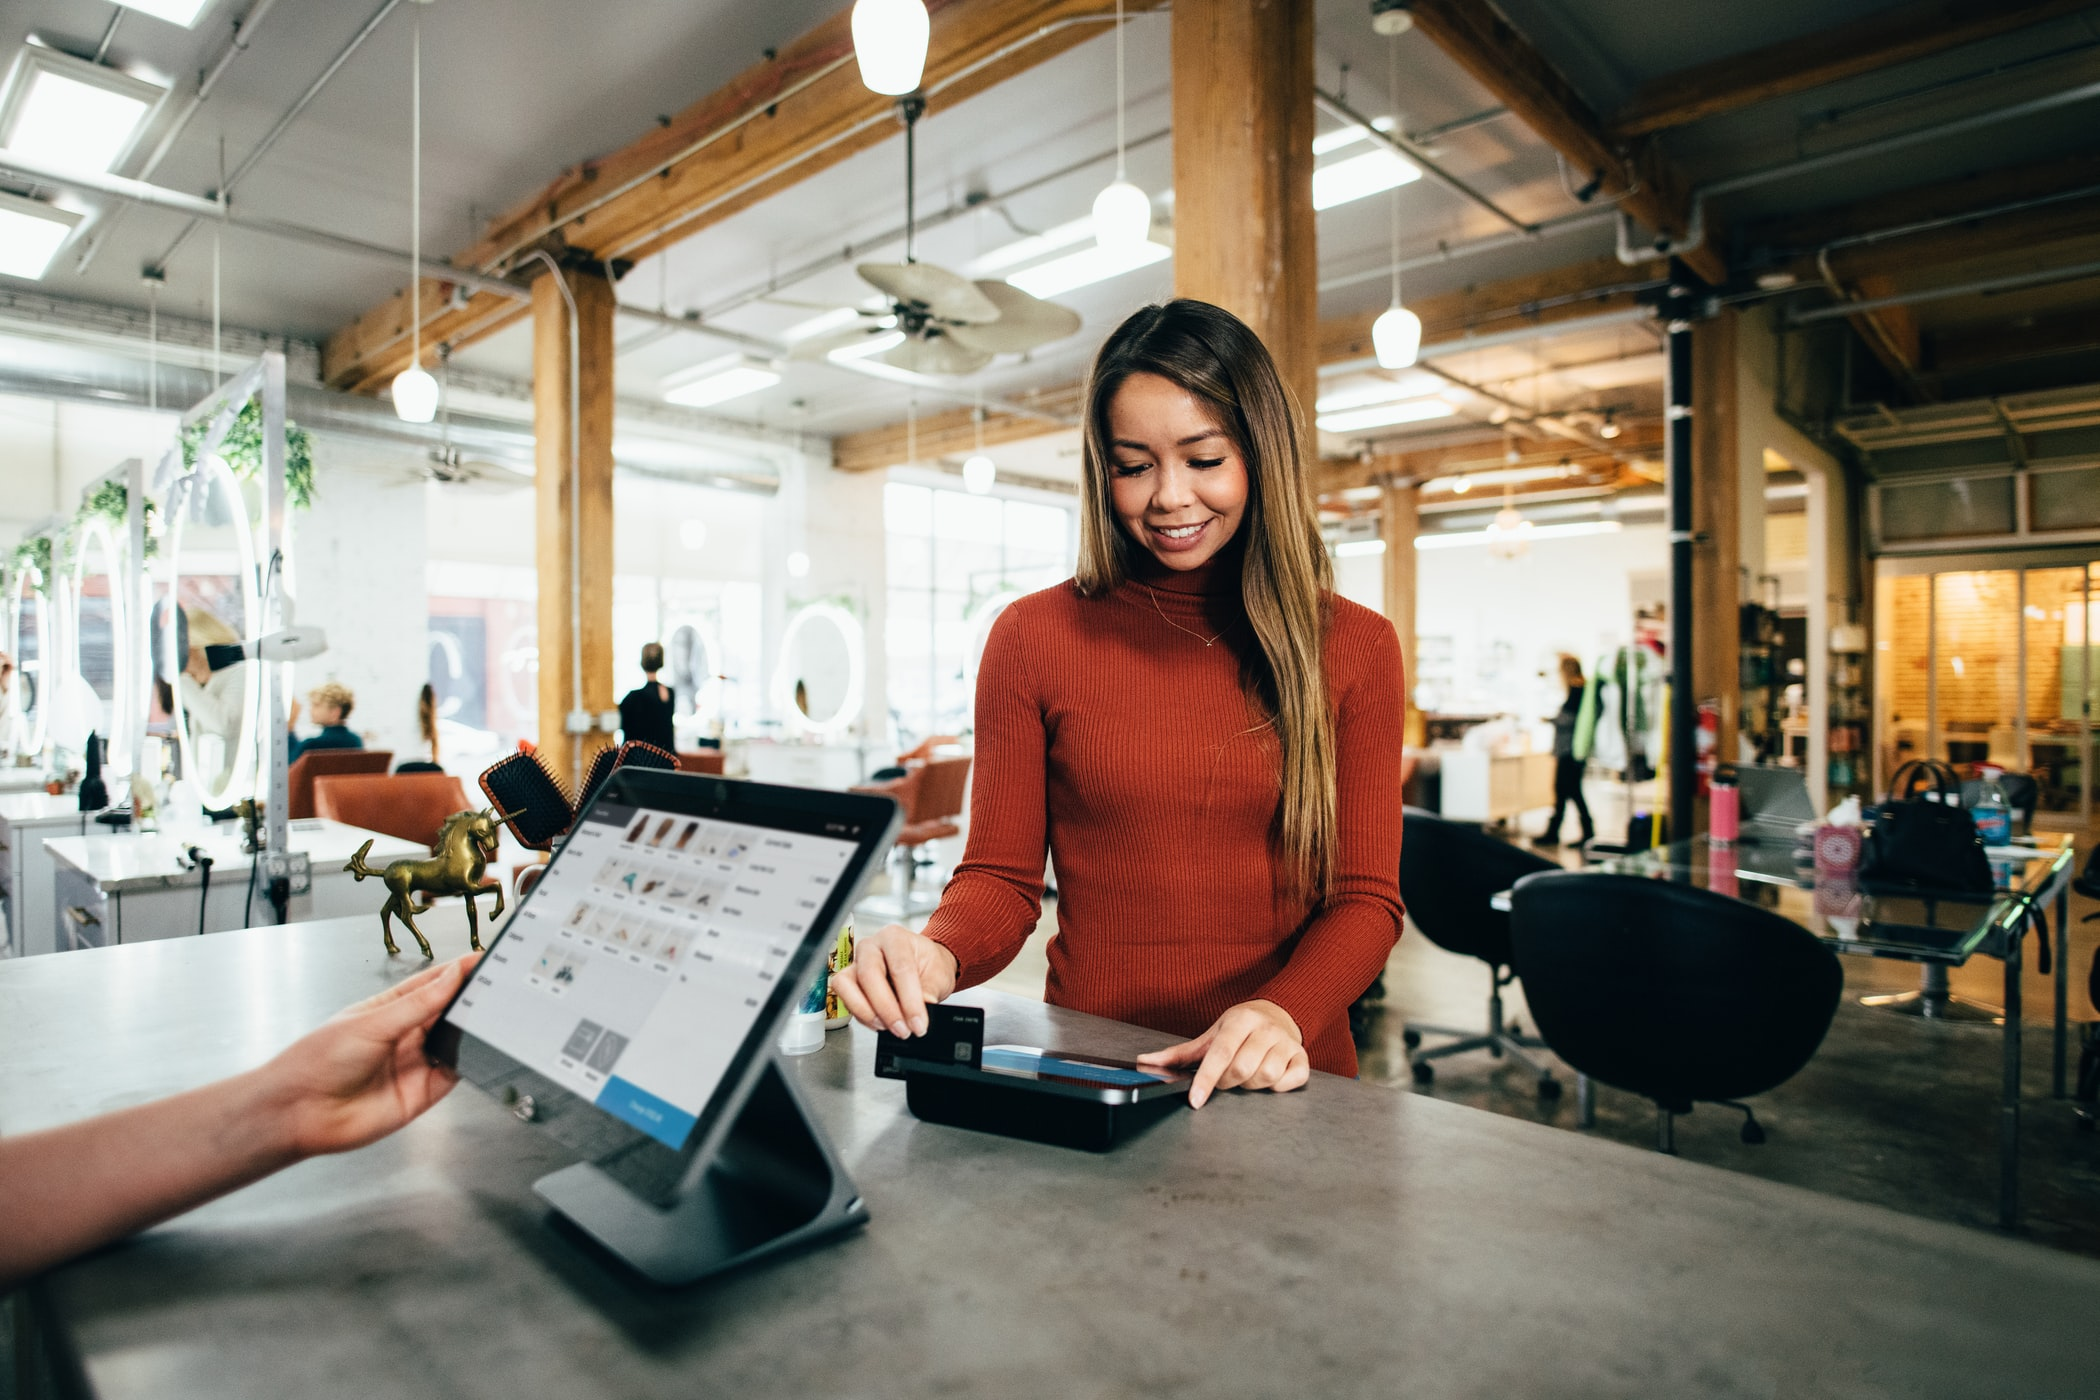 Customer touch-points generate invaluable data for brands